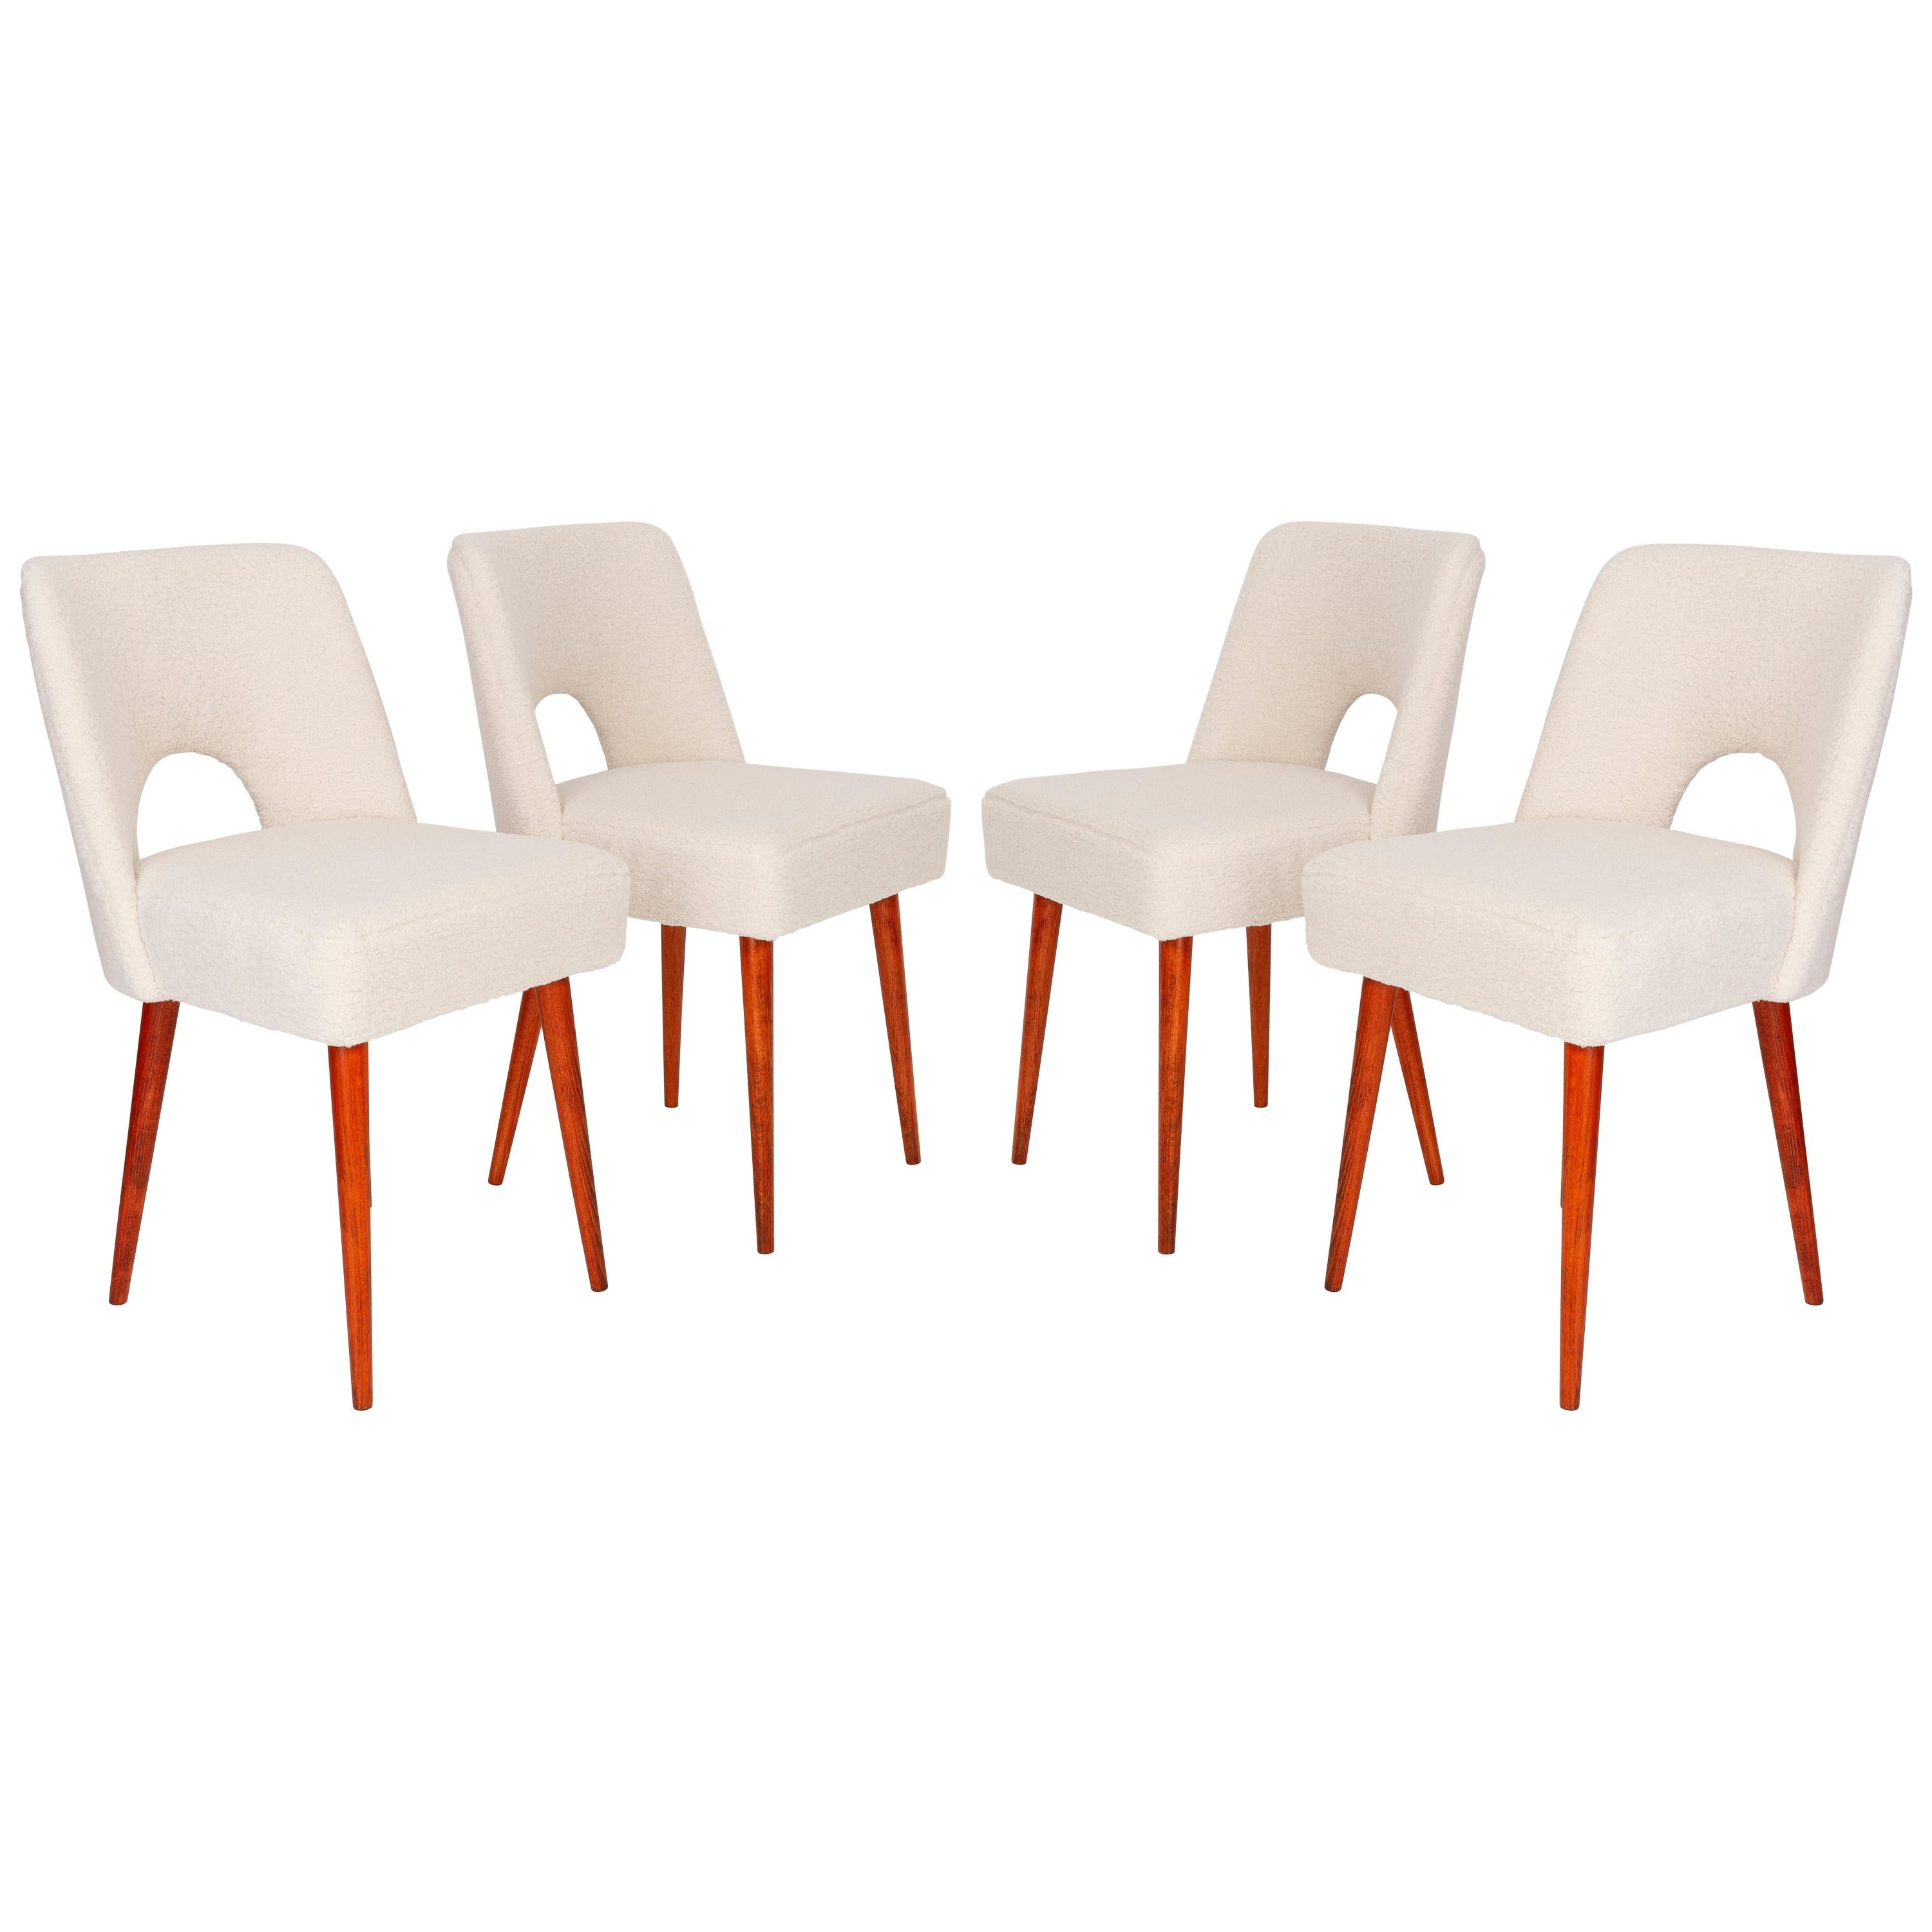 Set of Four Light Crème Boucle 'Shell' Chairs, 1960s